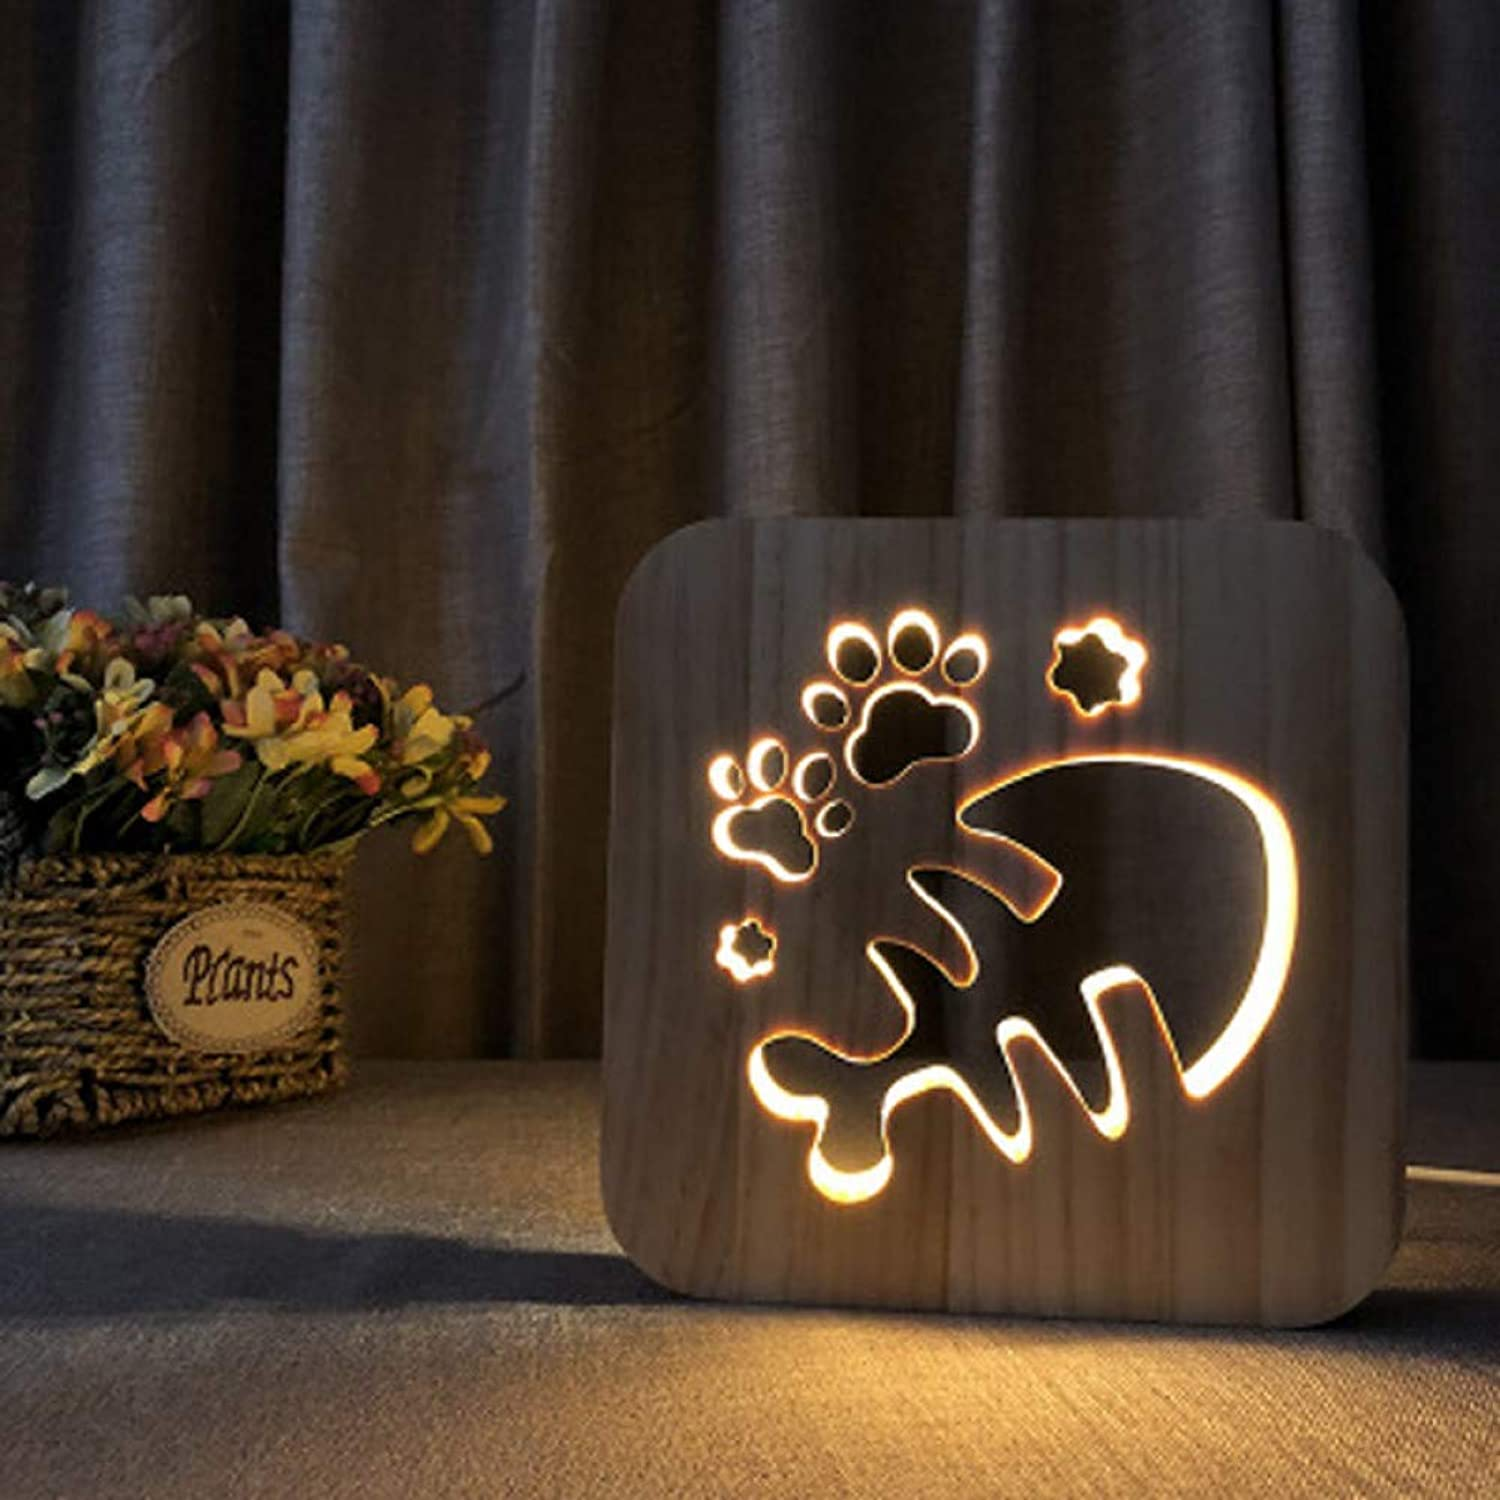 KKXXYD Wood Exquisite Hollow Carving Night Light Cartoon Design A Variety of Styles USB Power Led Night Lamp